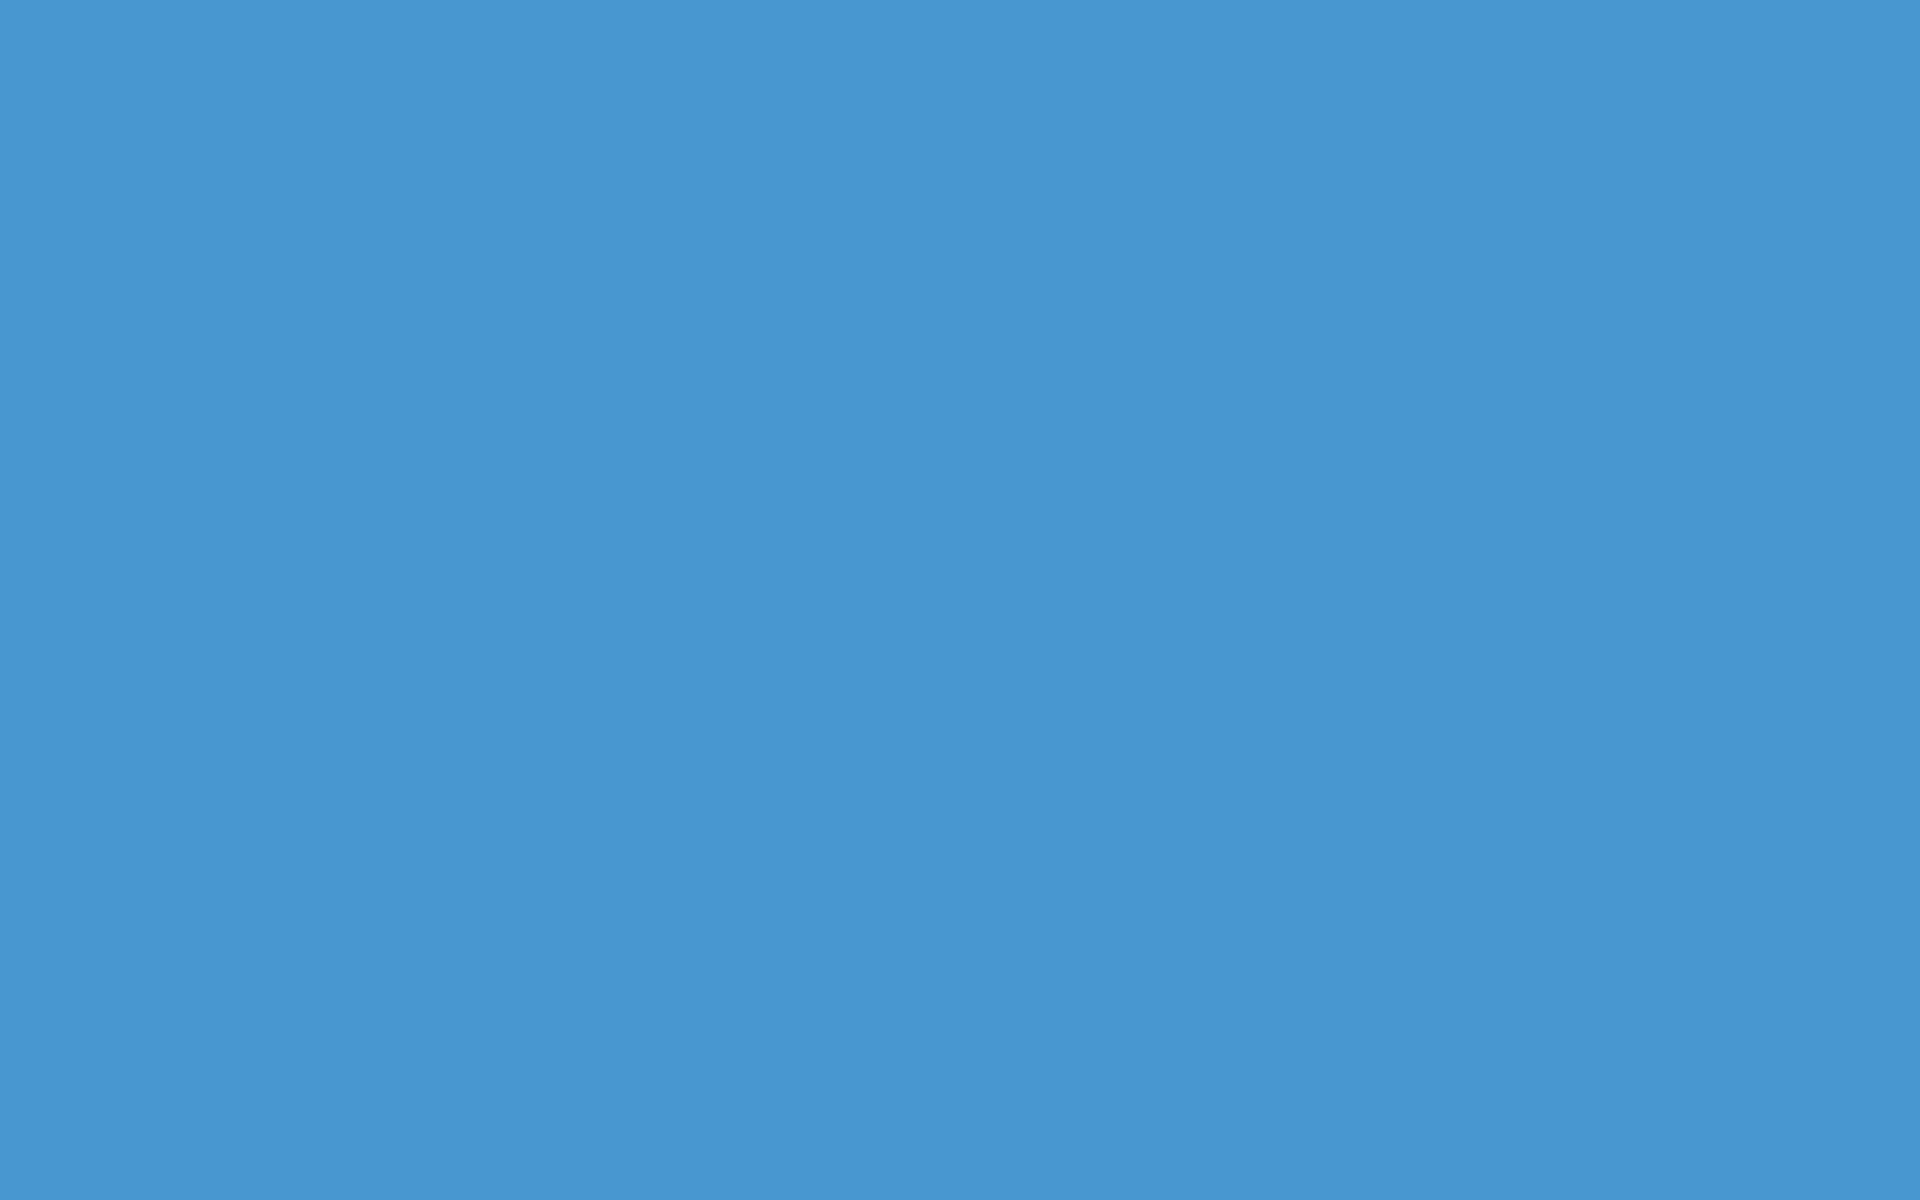 1920x1200 Celestial Blue Solid Color Background